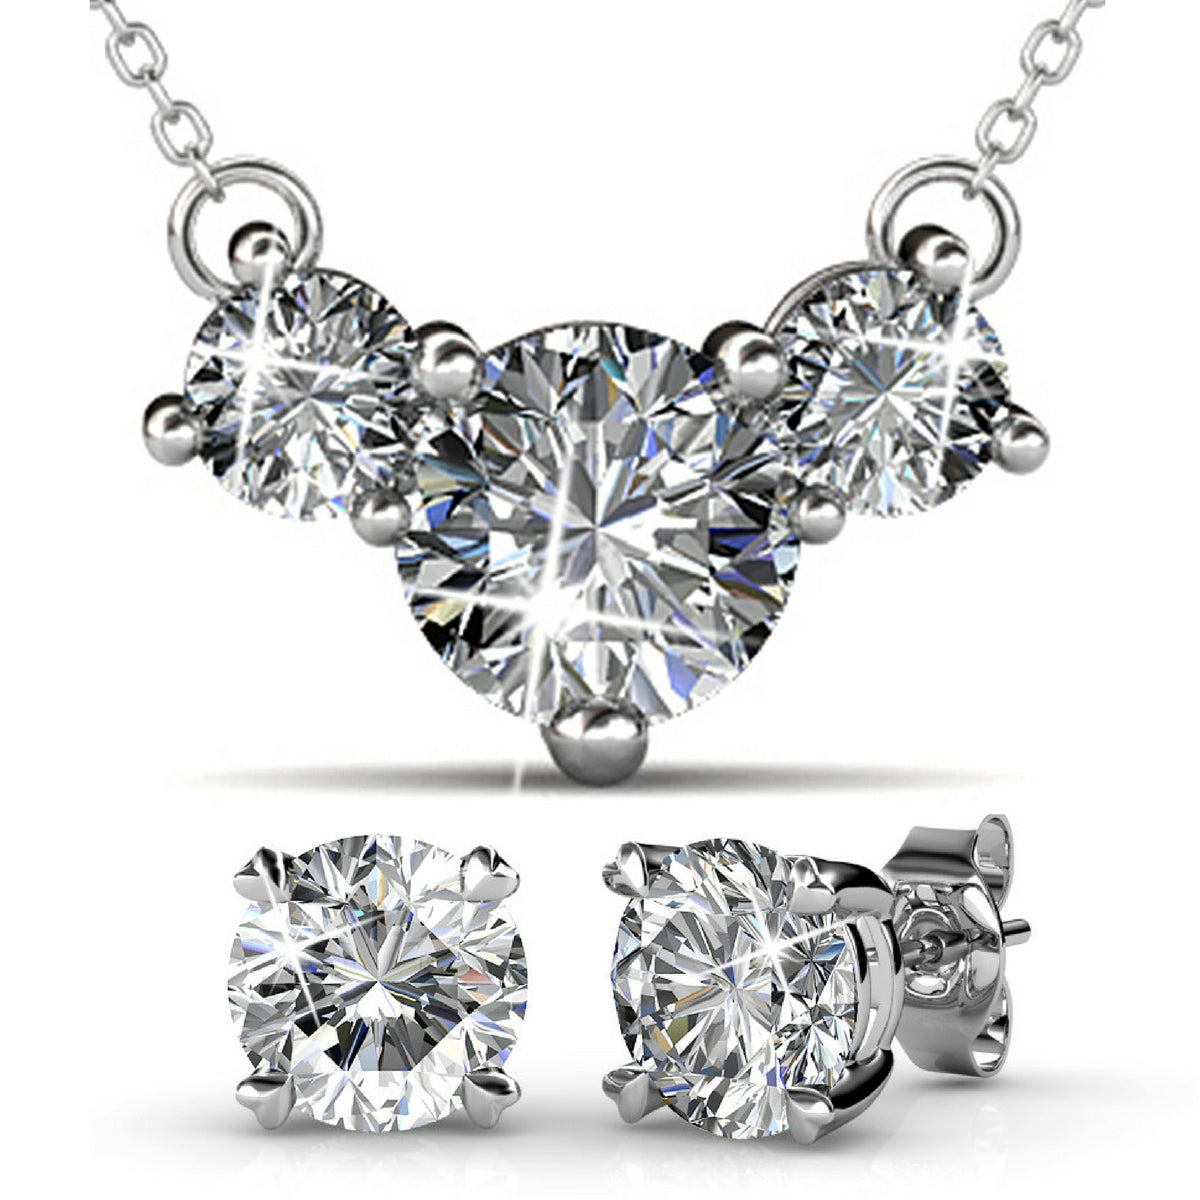 2pc Set Ft Swarovski Crystals - White Gold